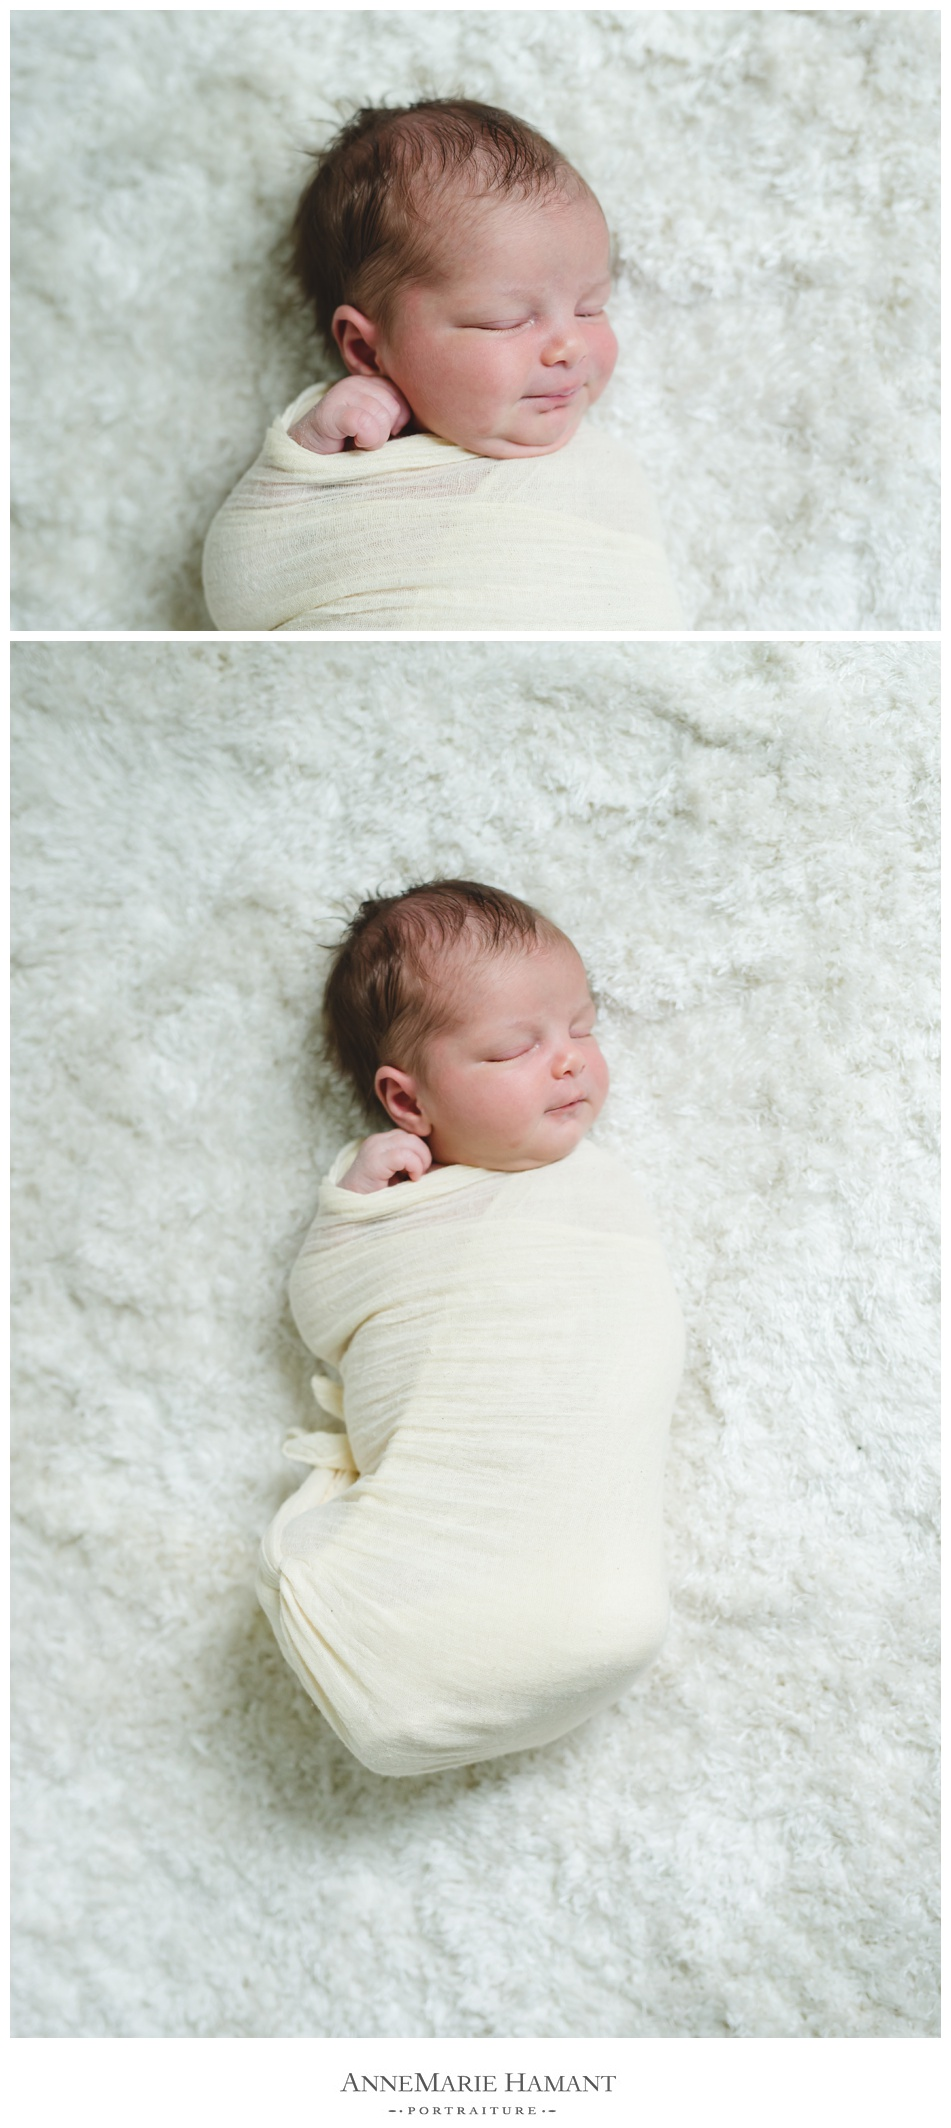 Lehigh Valley Bucks County newborn photographer